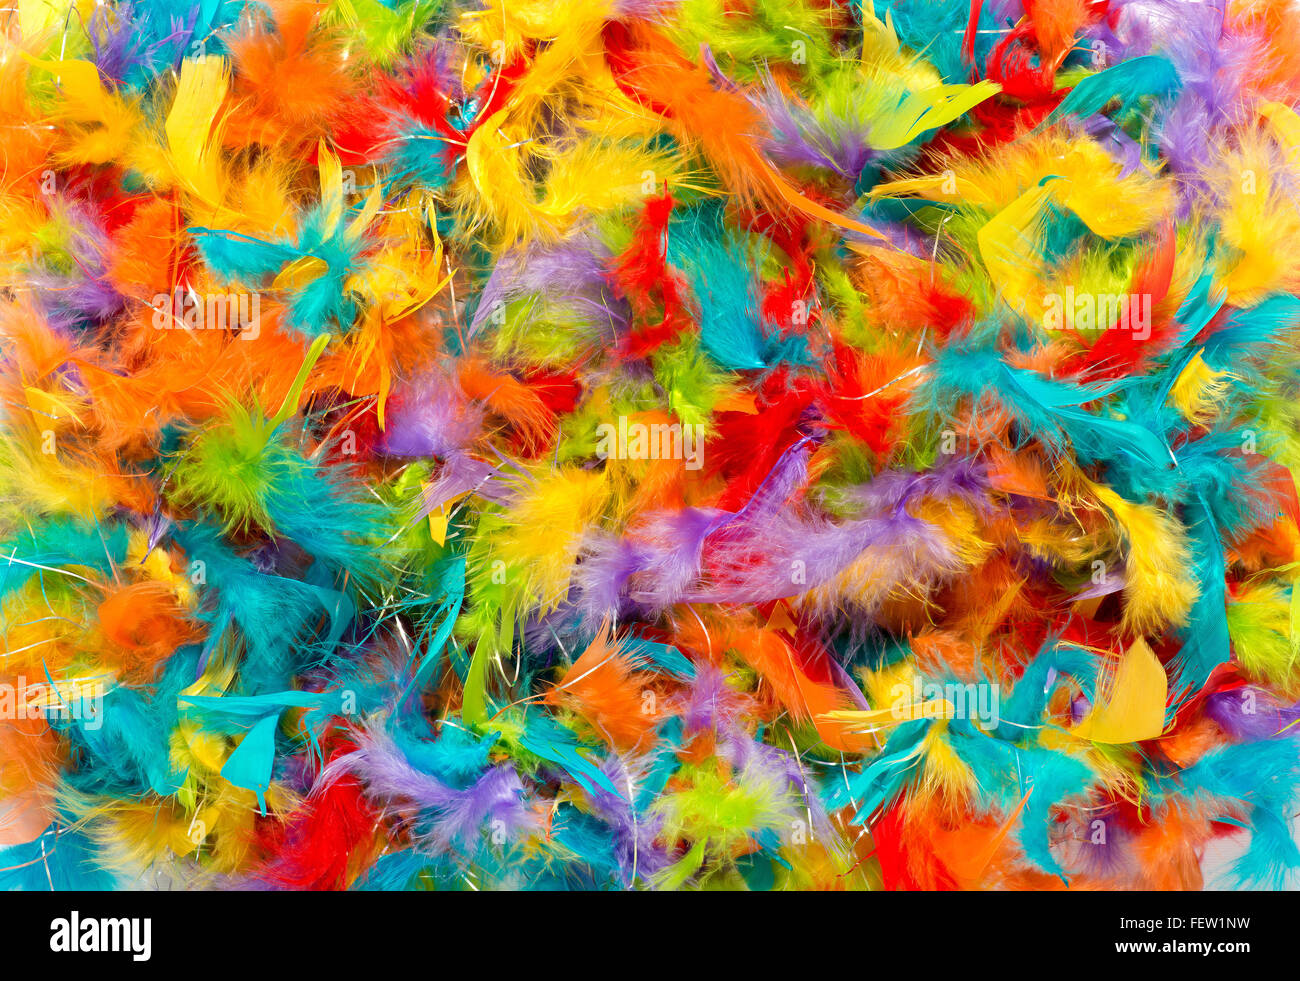 Colorful background of vivid brightly colored dyed soft fluffy bird feathers - Stock Image